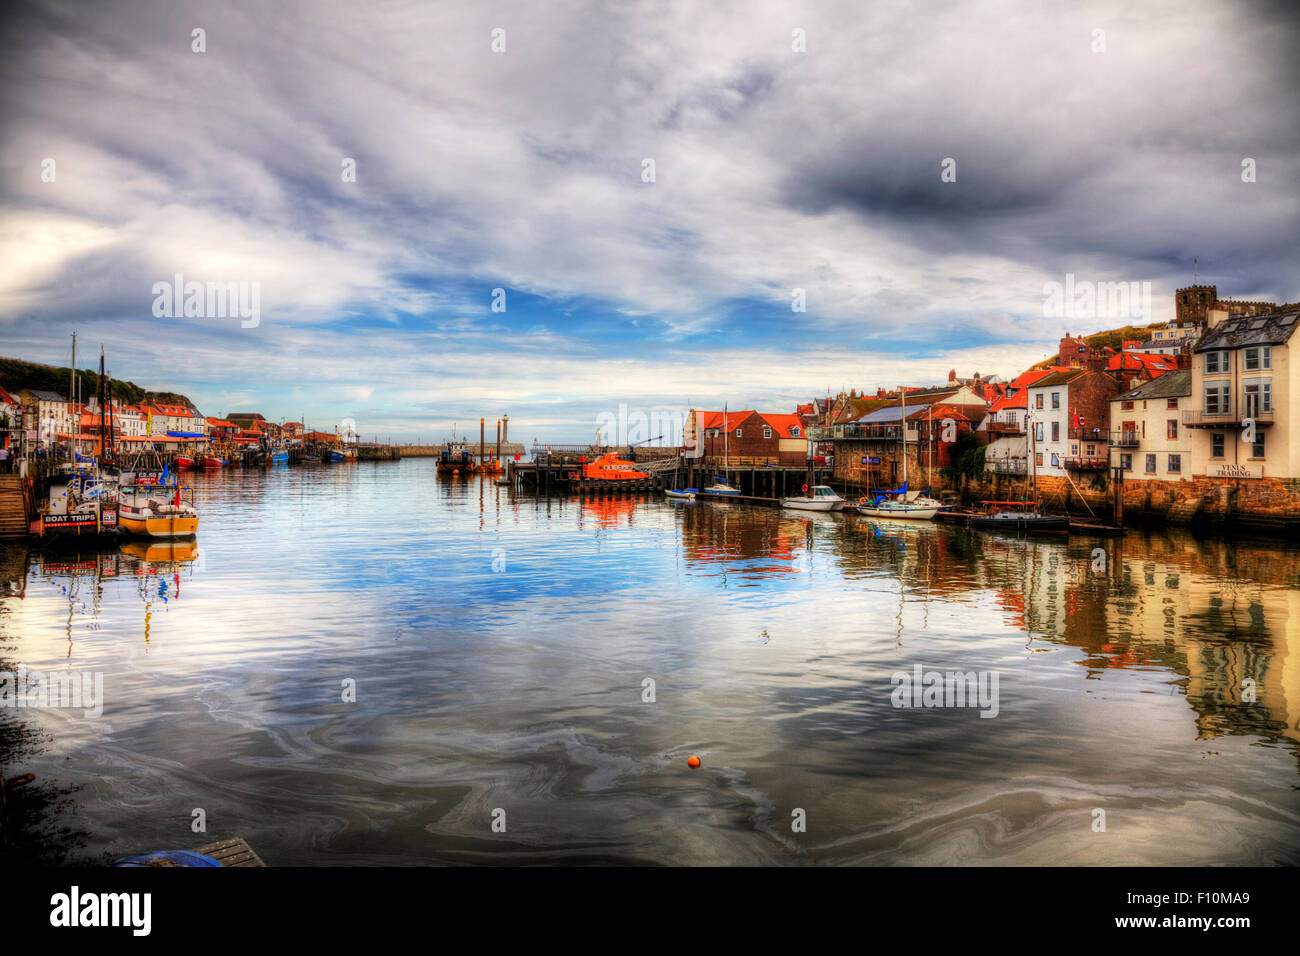 Whitby town harbour harbor coast coastal homes houses dramatic view scene sea pollution in water North Yorkshire - Stock Image